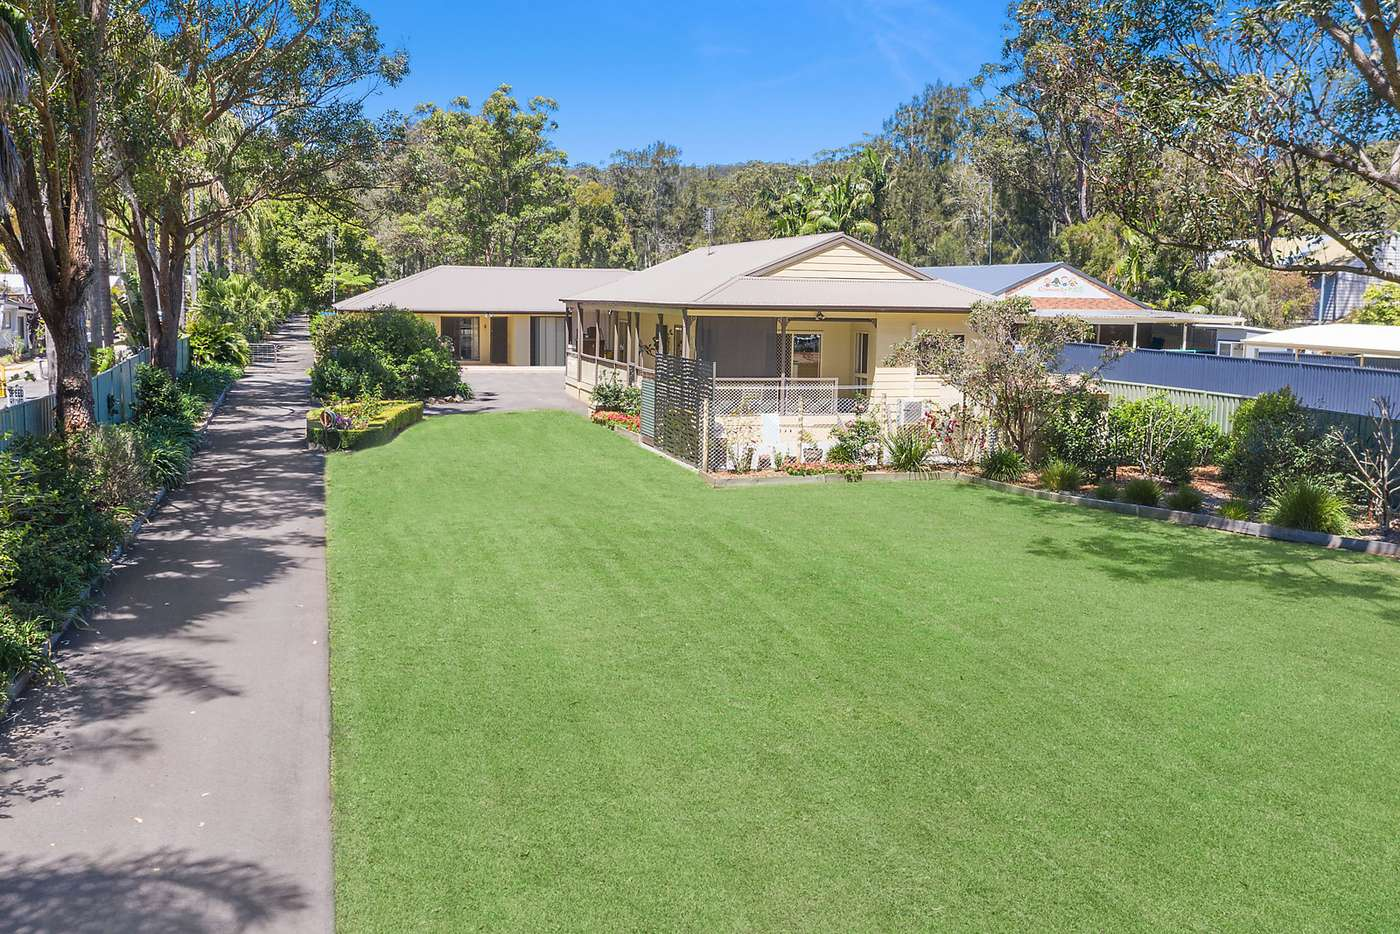 Main view of Homely house listing, 435 Wards Hill Road, Empire Bay NSW 2257